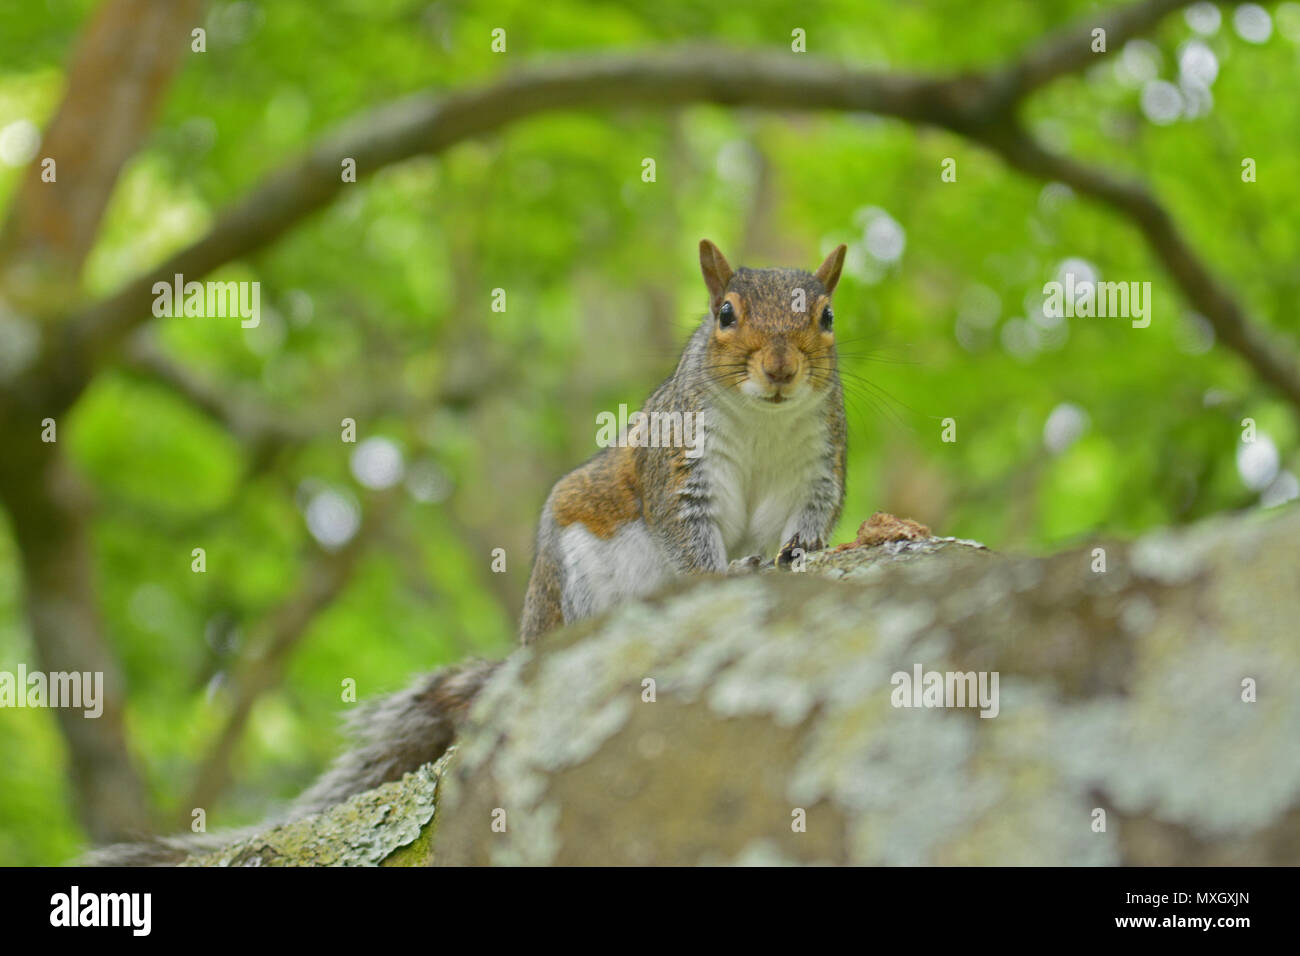 Bath, UK. 4th June, 2018. UK Weather.A Squirrel sitting in a tree in Bath Park watching the world pass by on a Hot and Humid Day. Robert Timoney/Alamy/Live/News - Stock Image